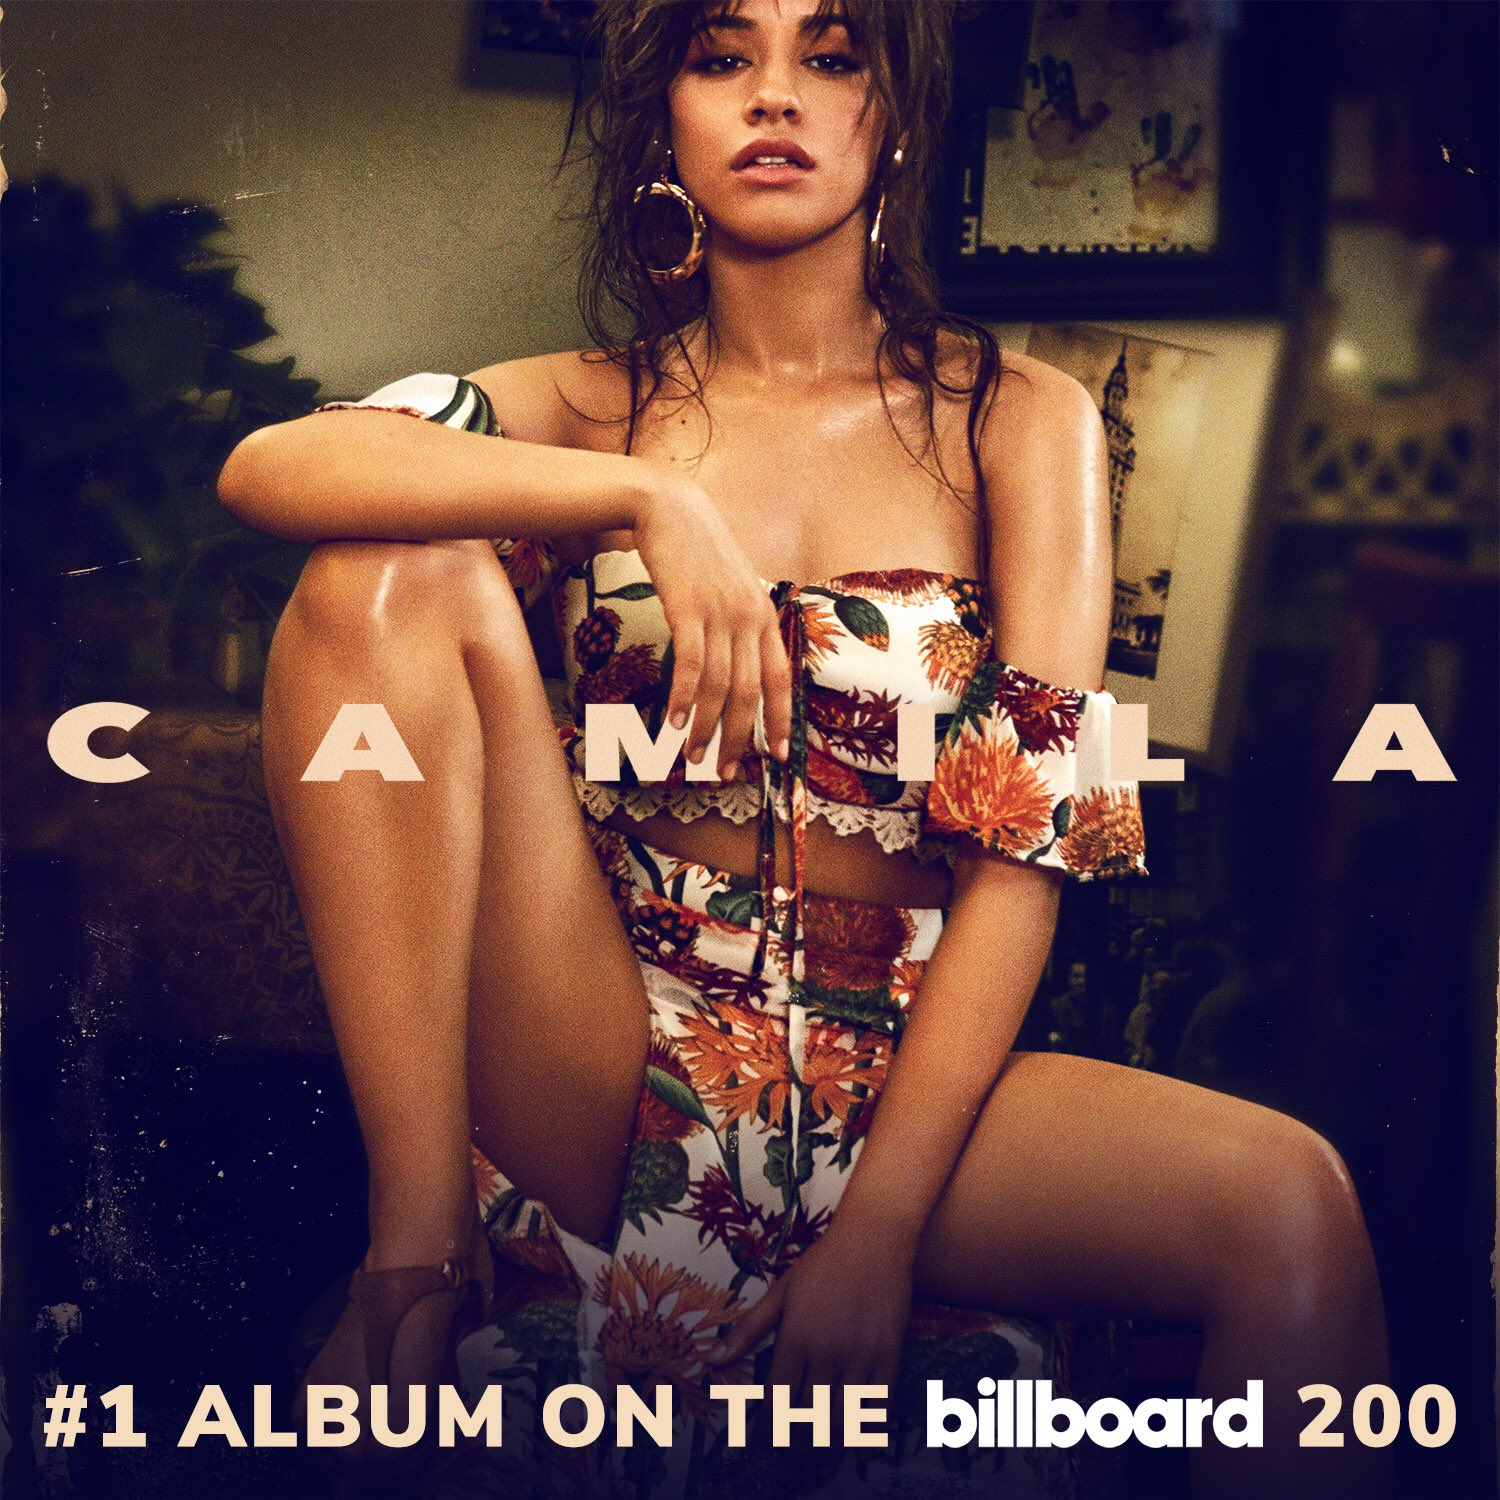 Congratulations to @Camila_Cabello for debuting #1 on the @billboard 200 chart!!!! #CAMILA ���� https://t.co/IYKvw1RoKB